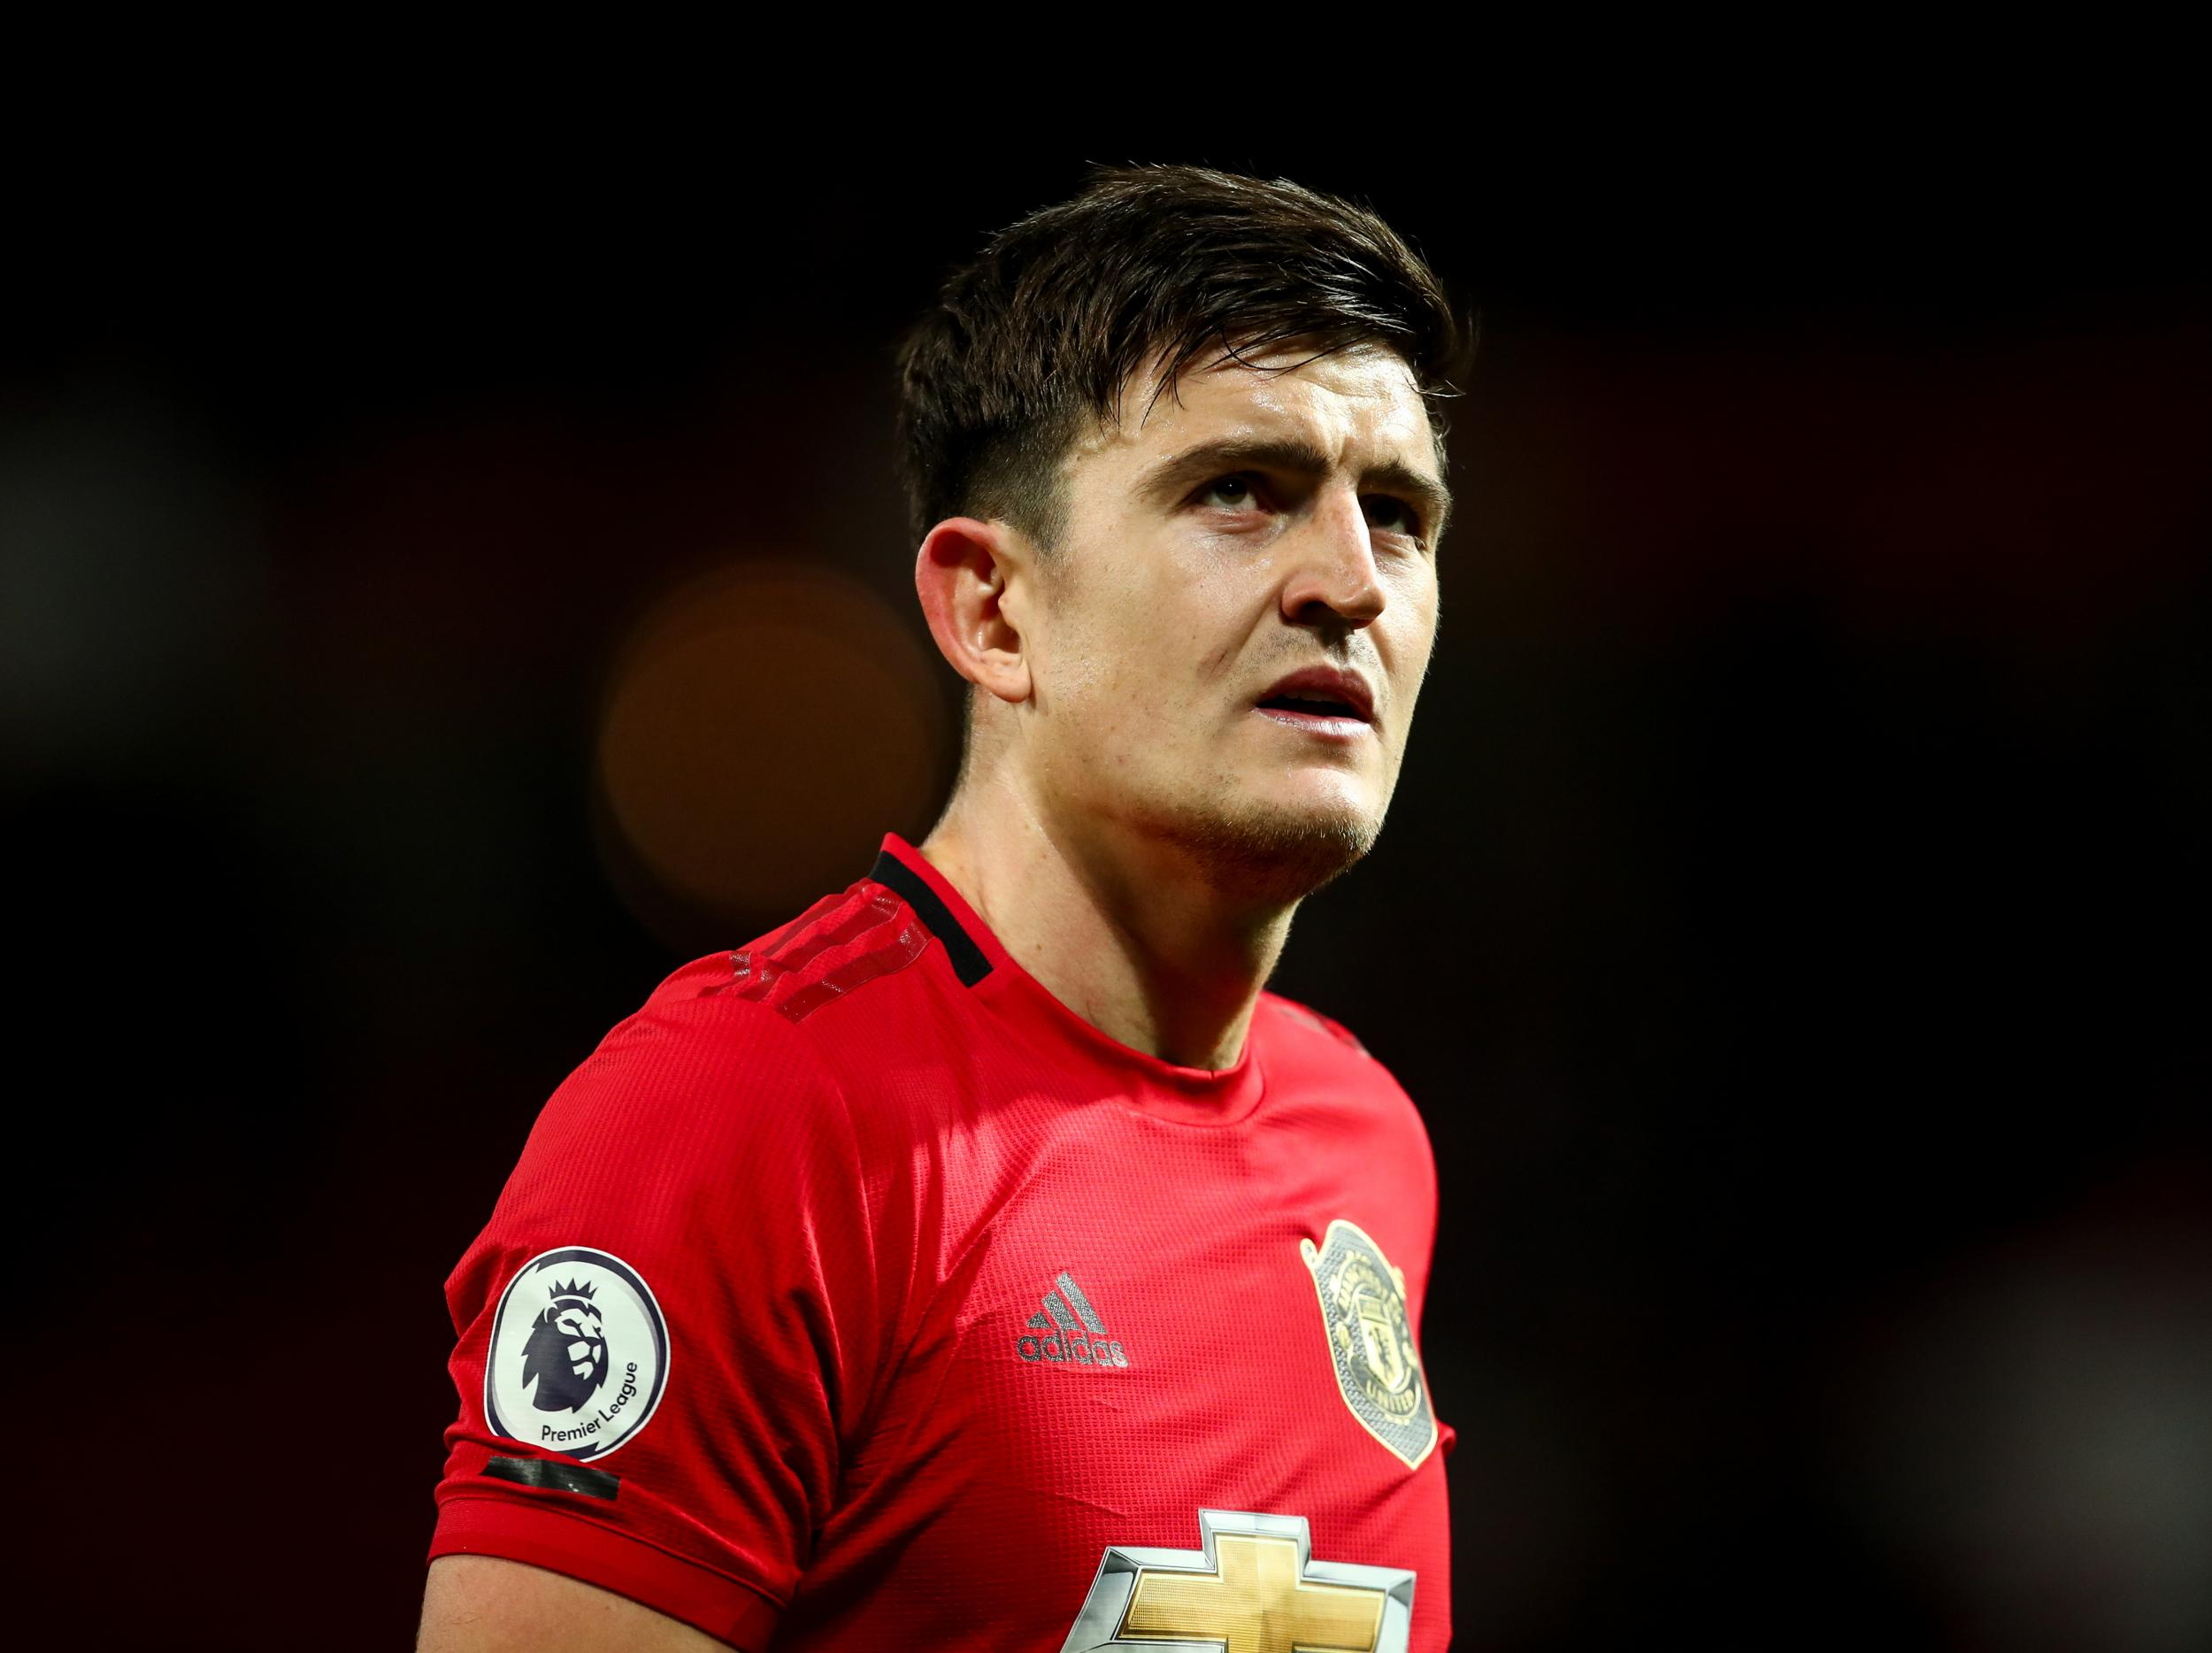 Man Utd's Harry Maguire compared to a Sunday League player by Rafael van der Vaart